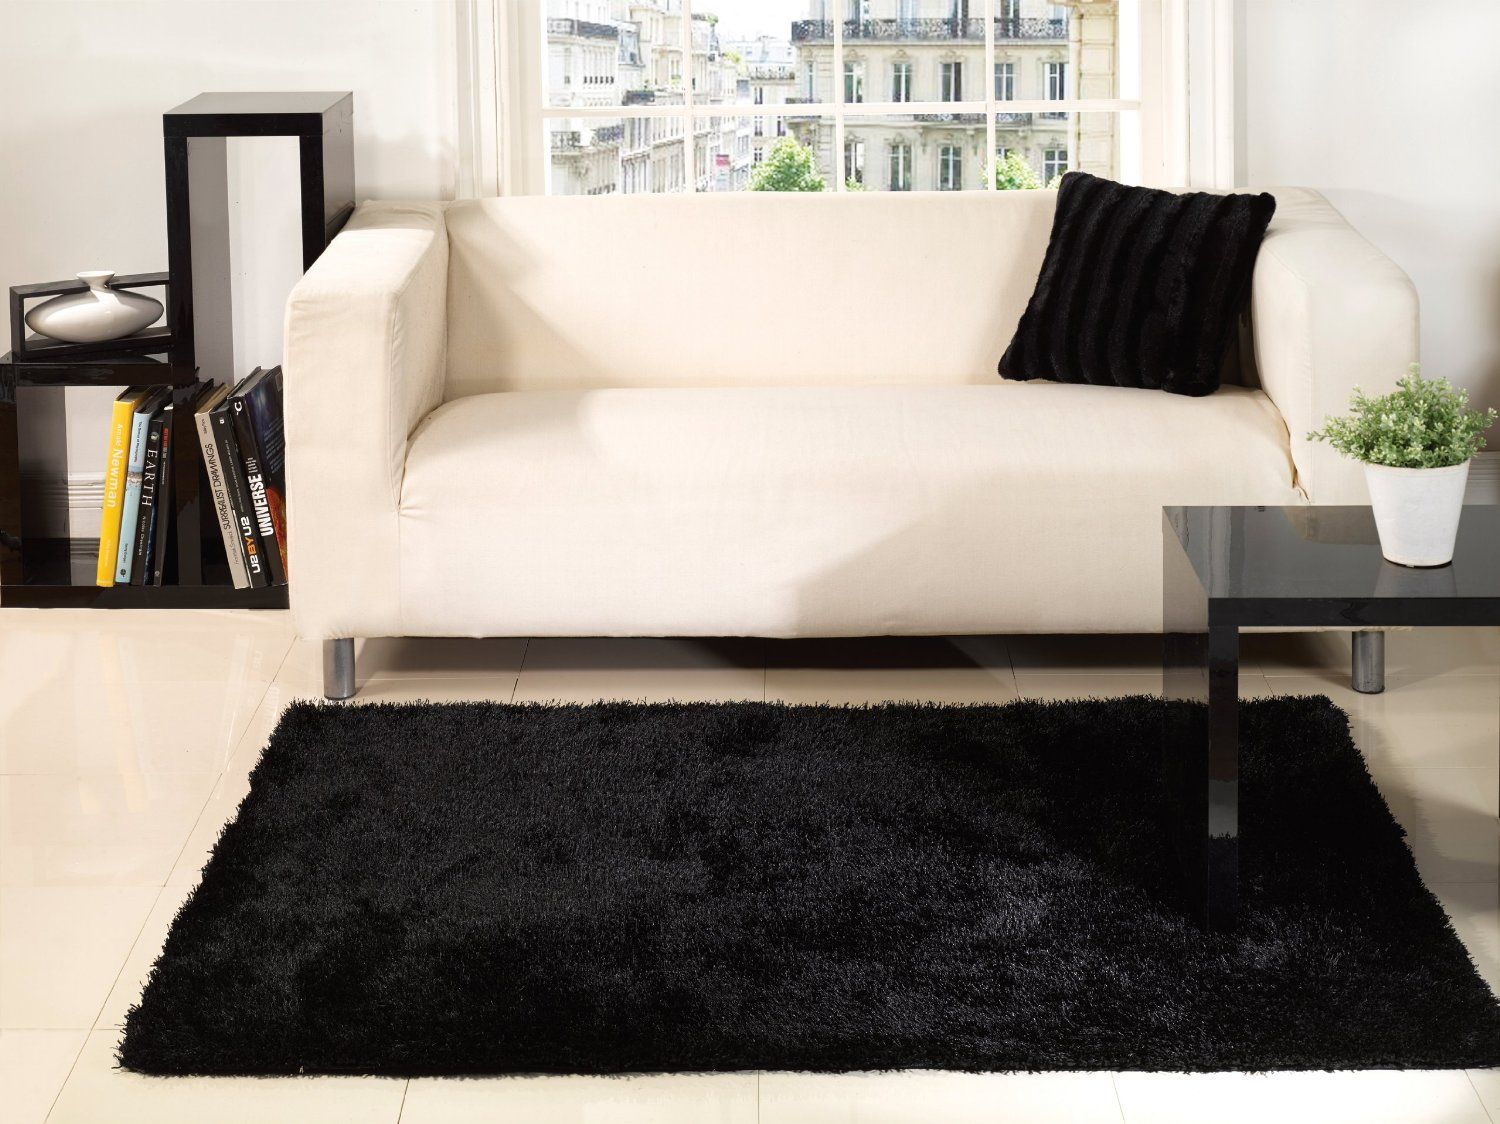 Beautiful Fluffy Rugs For Interior Decoration Soft Comfortable Modern Black White Fluffy Rug Inspiration Offering St With Images Black Carpet Plain Rugs White Fluffy Rug